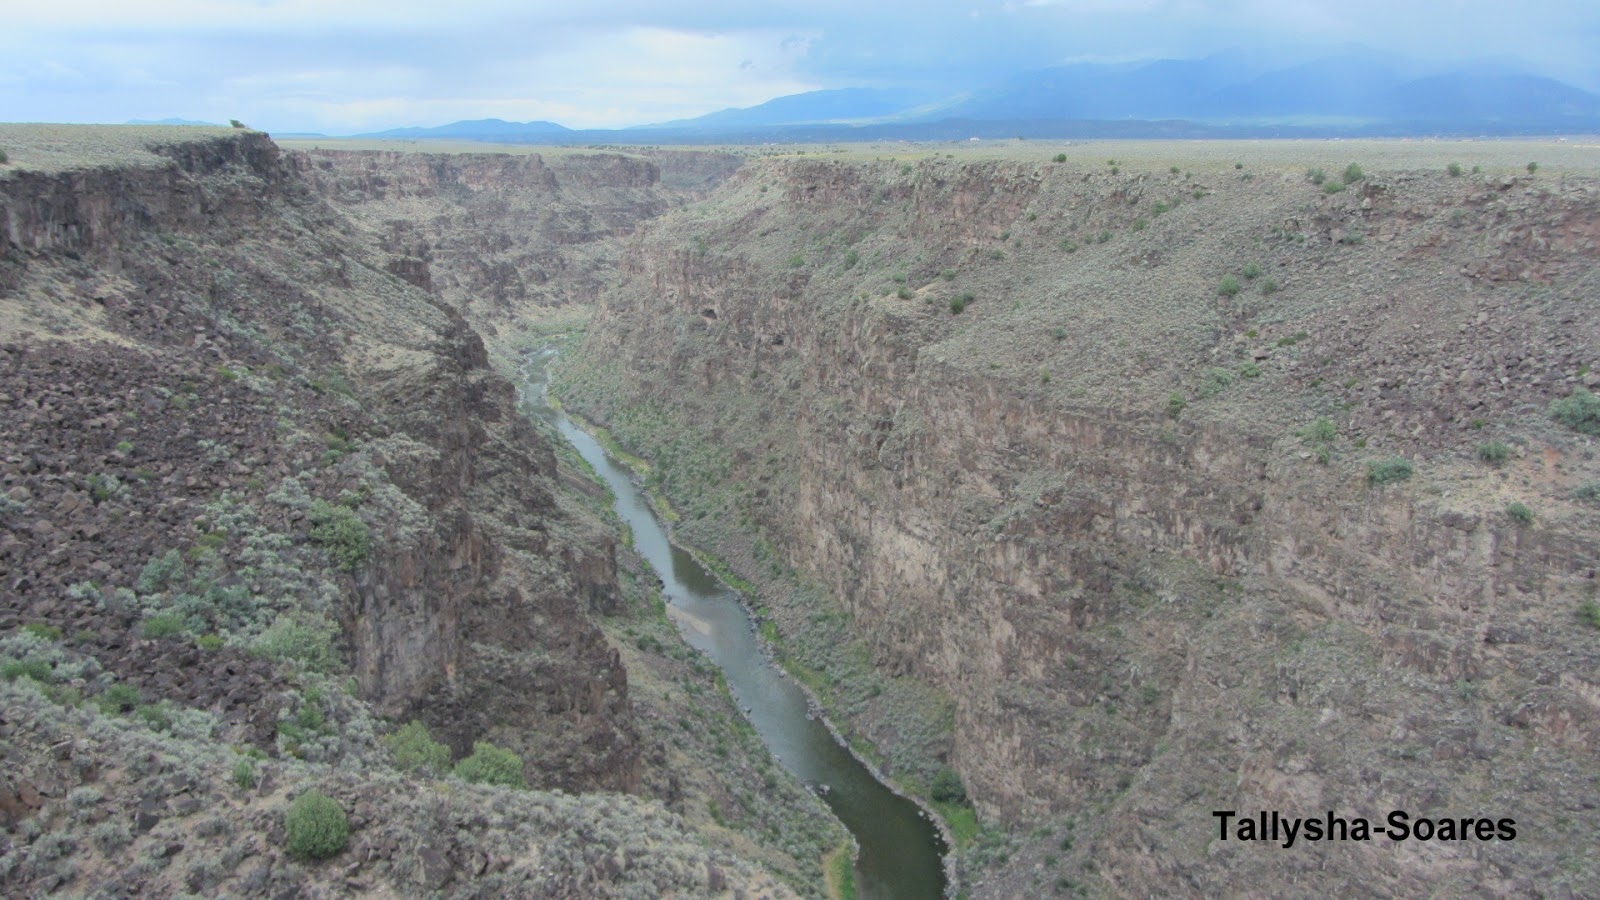 grand gorge Grand gorge tourism: tripadvisor has 87 reviews of grand gorge hotels, attractions, and restaurants making it your best grand gorge resource.